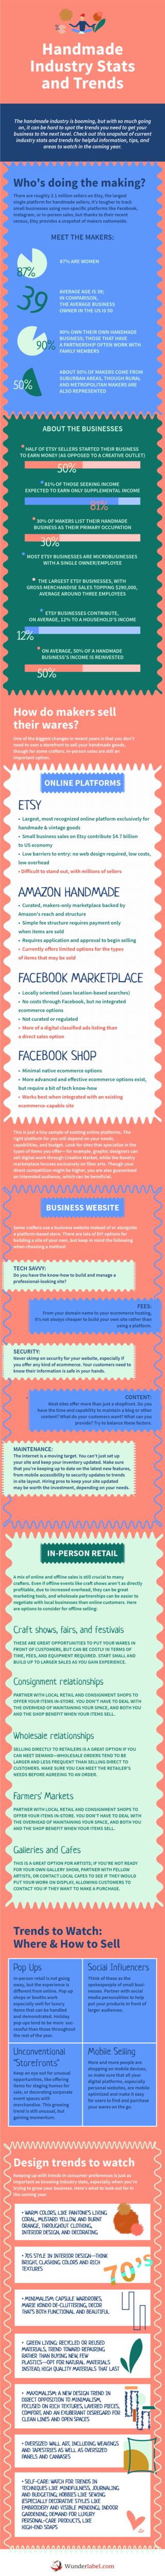 Content Marketing for Crafters and Sewists [Infographic]